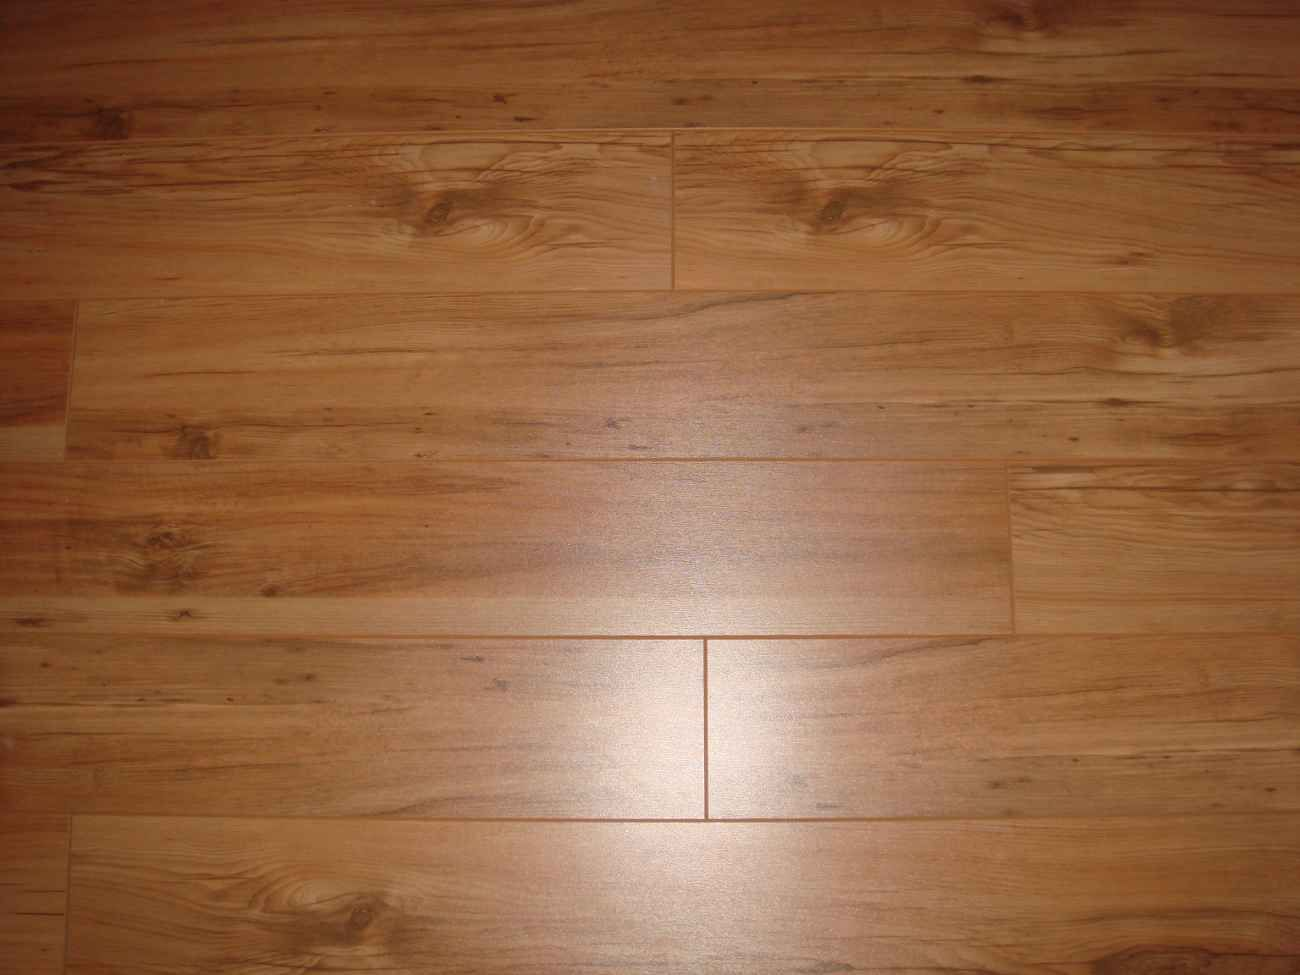 Best 25 ceramic tile floors ideas on pinterest ceramic tile ceramic tile that looks like wood wooden ceramic tile floors feel the home doublecrazyfo Choice Image